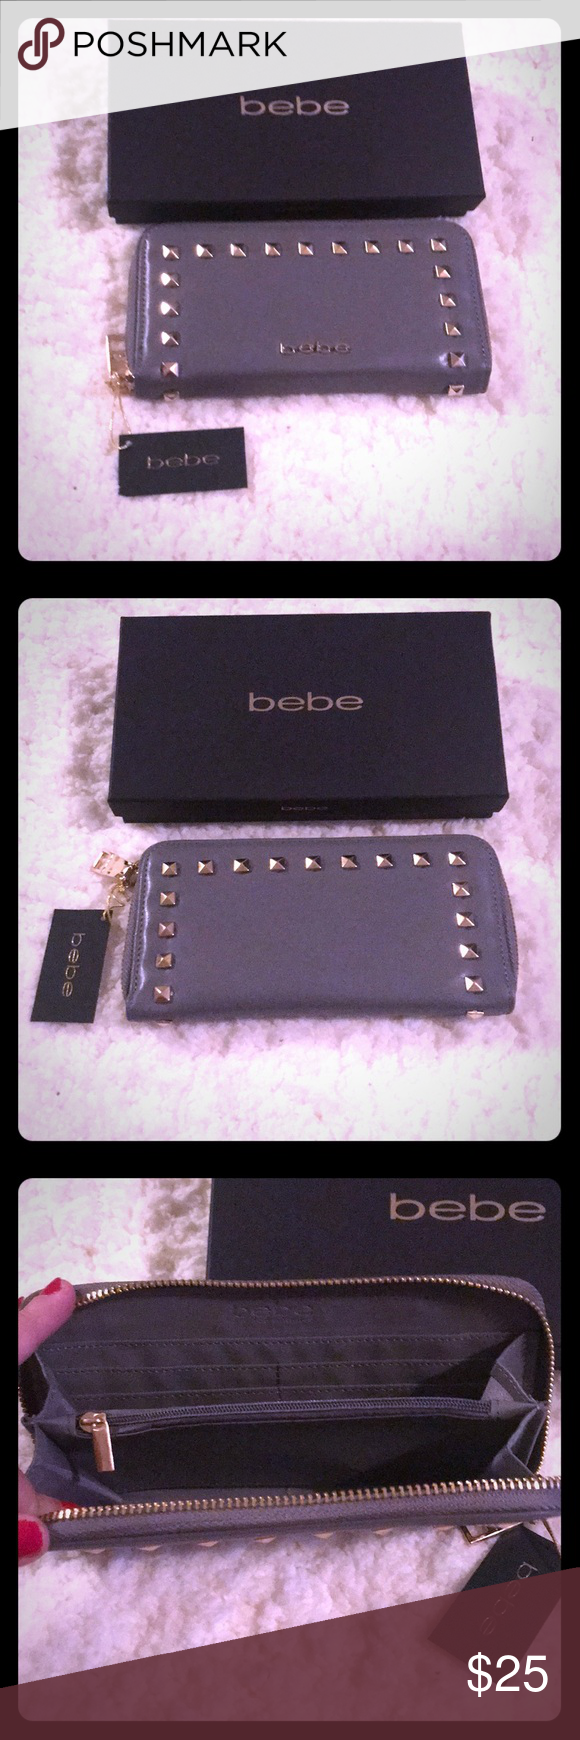 fb3a64a19a bebe Wallet NWT NWT, comes in box, bebe Jane zip around wallet, Grey, with  gold accents, Retail: $39.00 bebe Bags Wallets